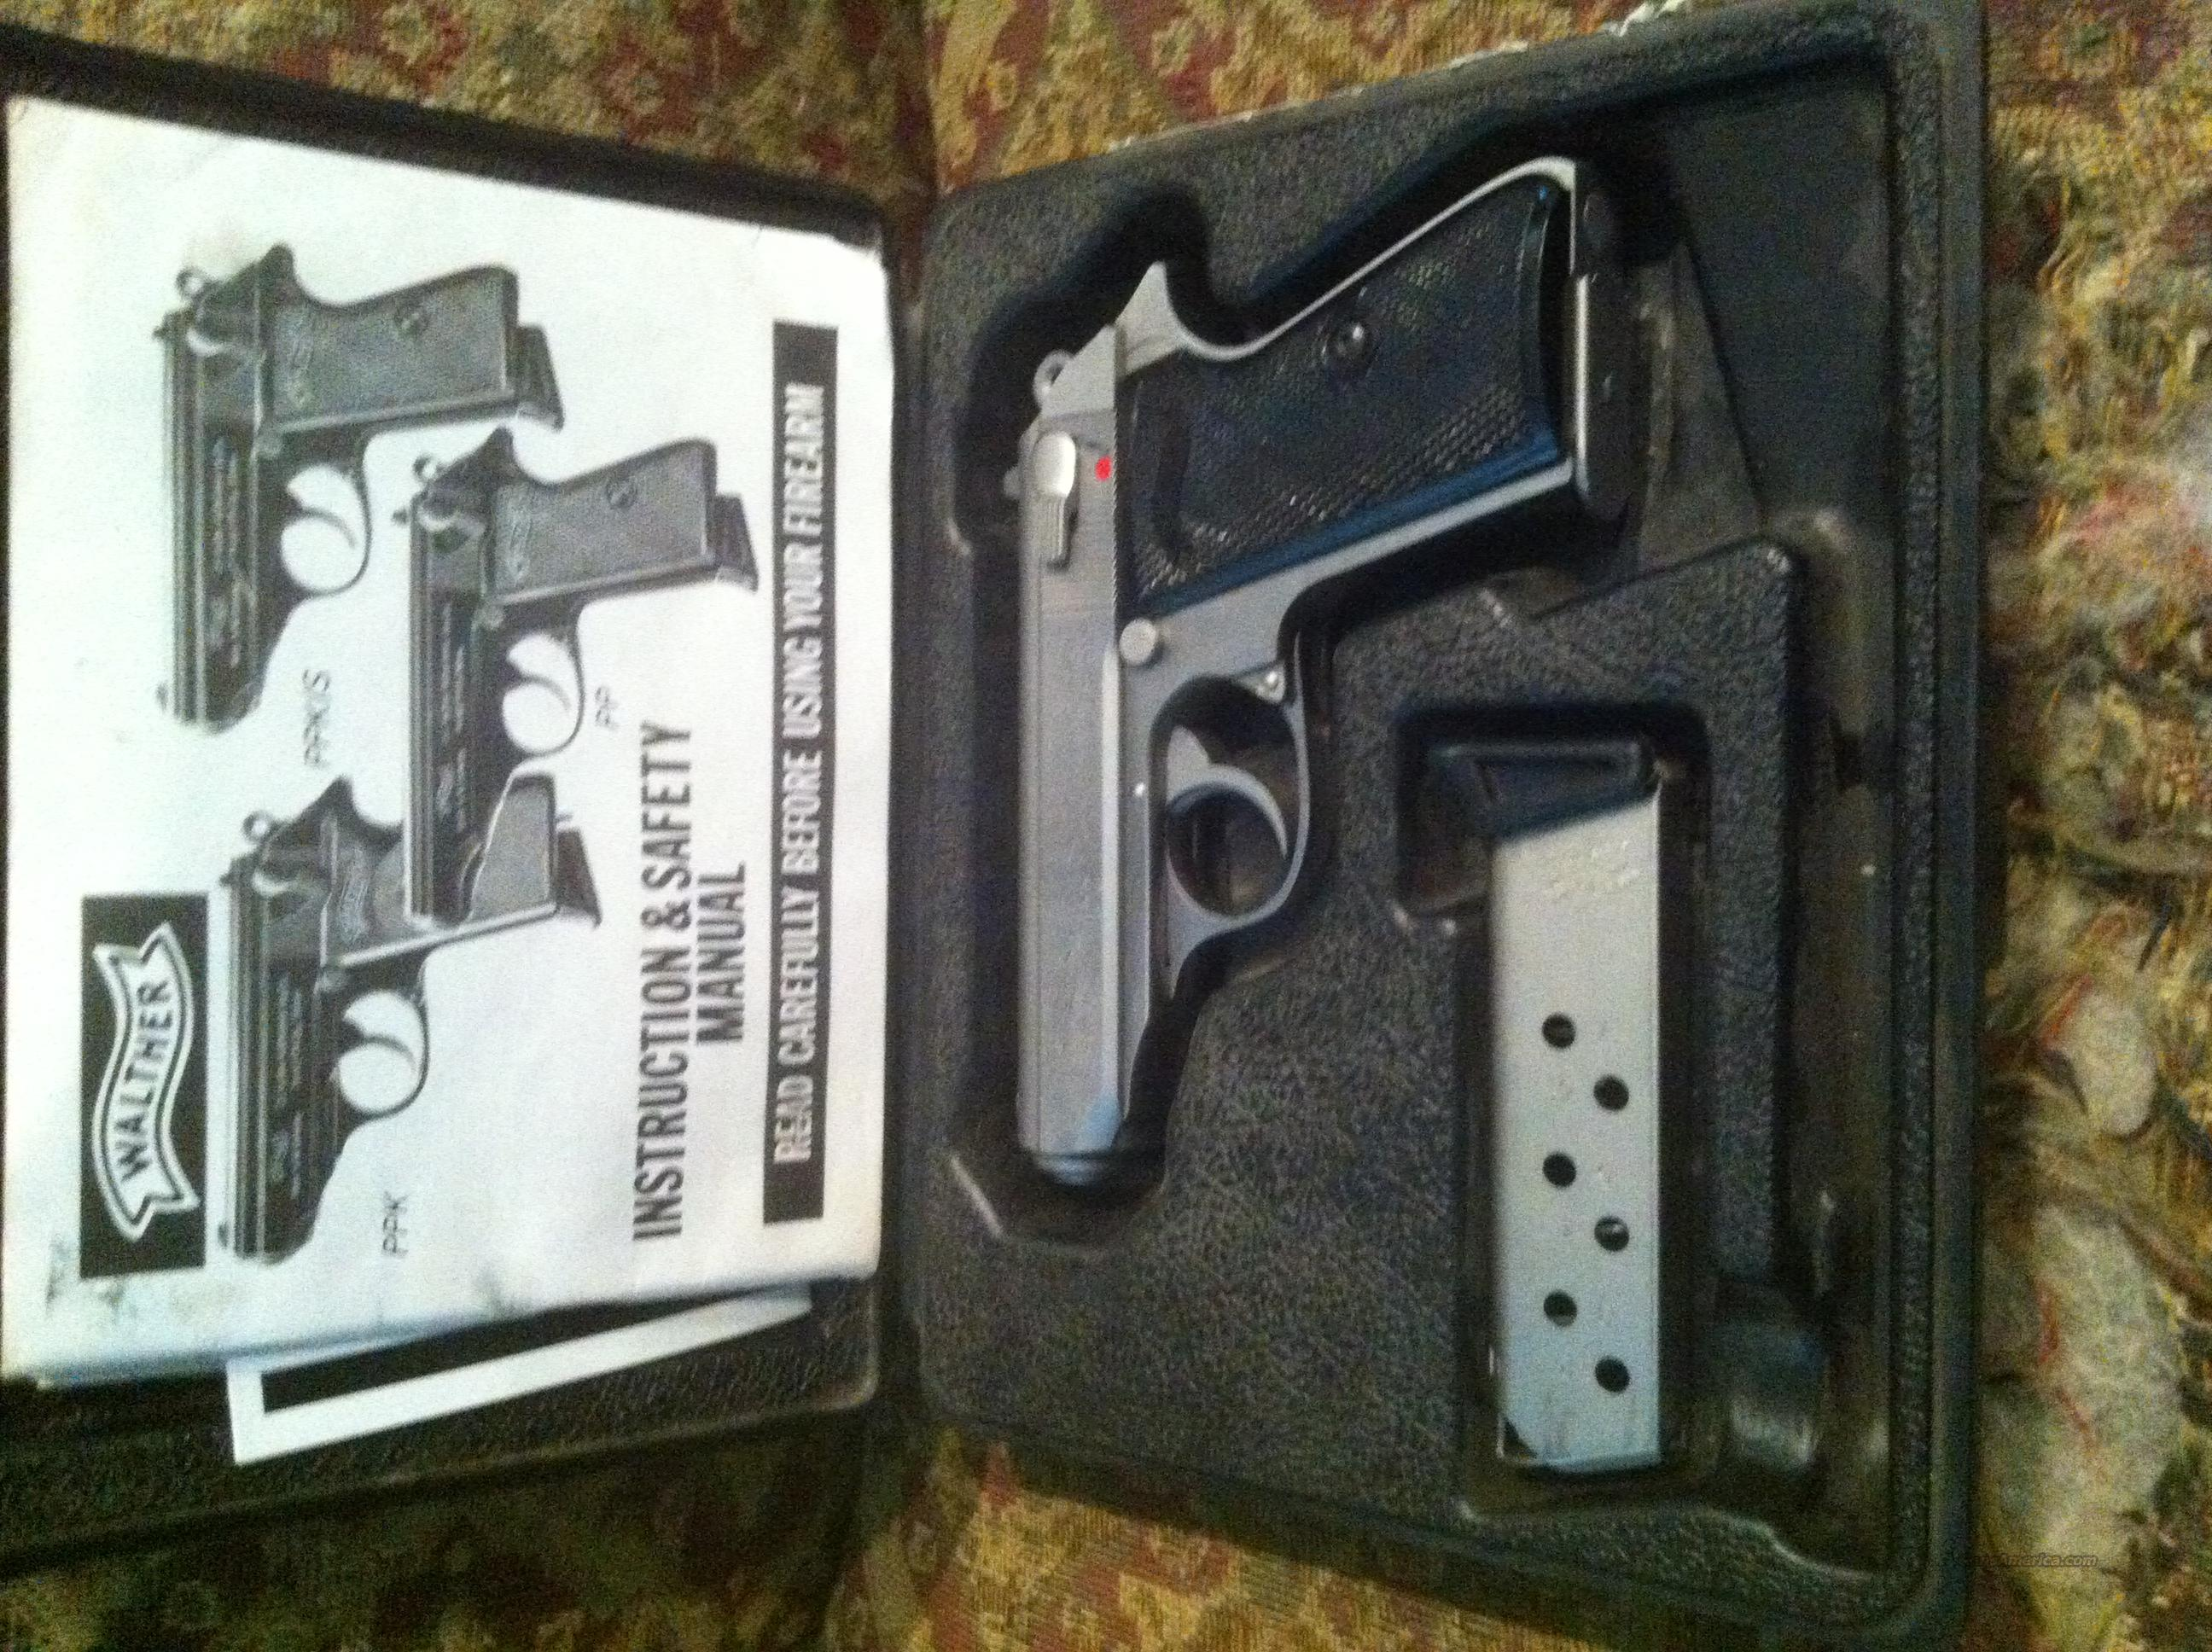 Walther PPK/S 9m/380  Guns > Pistols > Walther Pistols > Post WWII > PPK Series